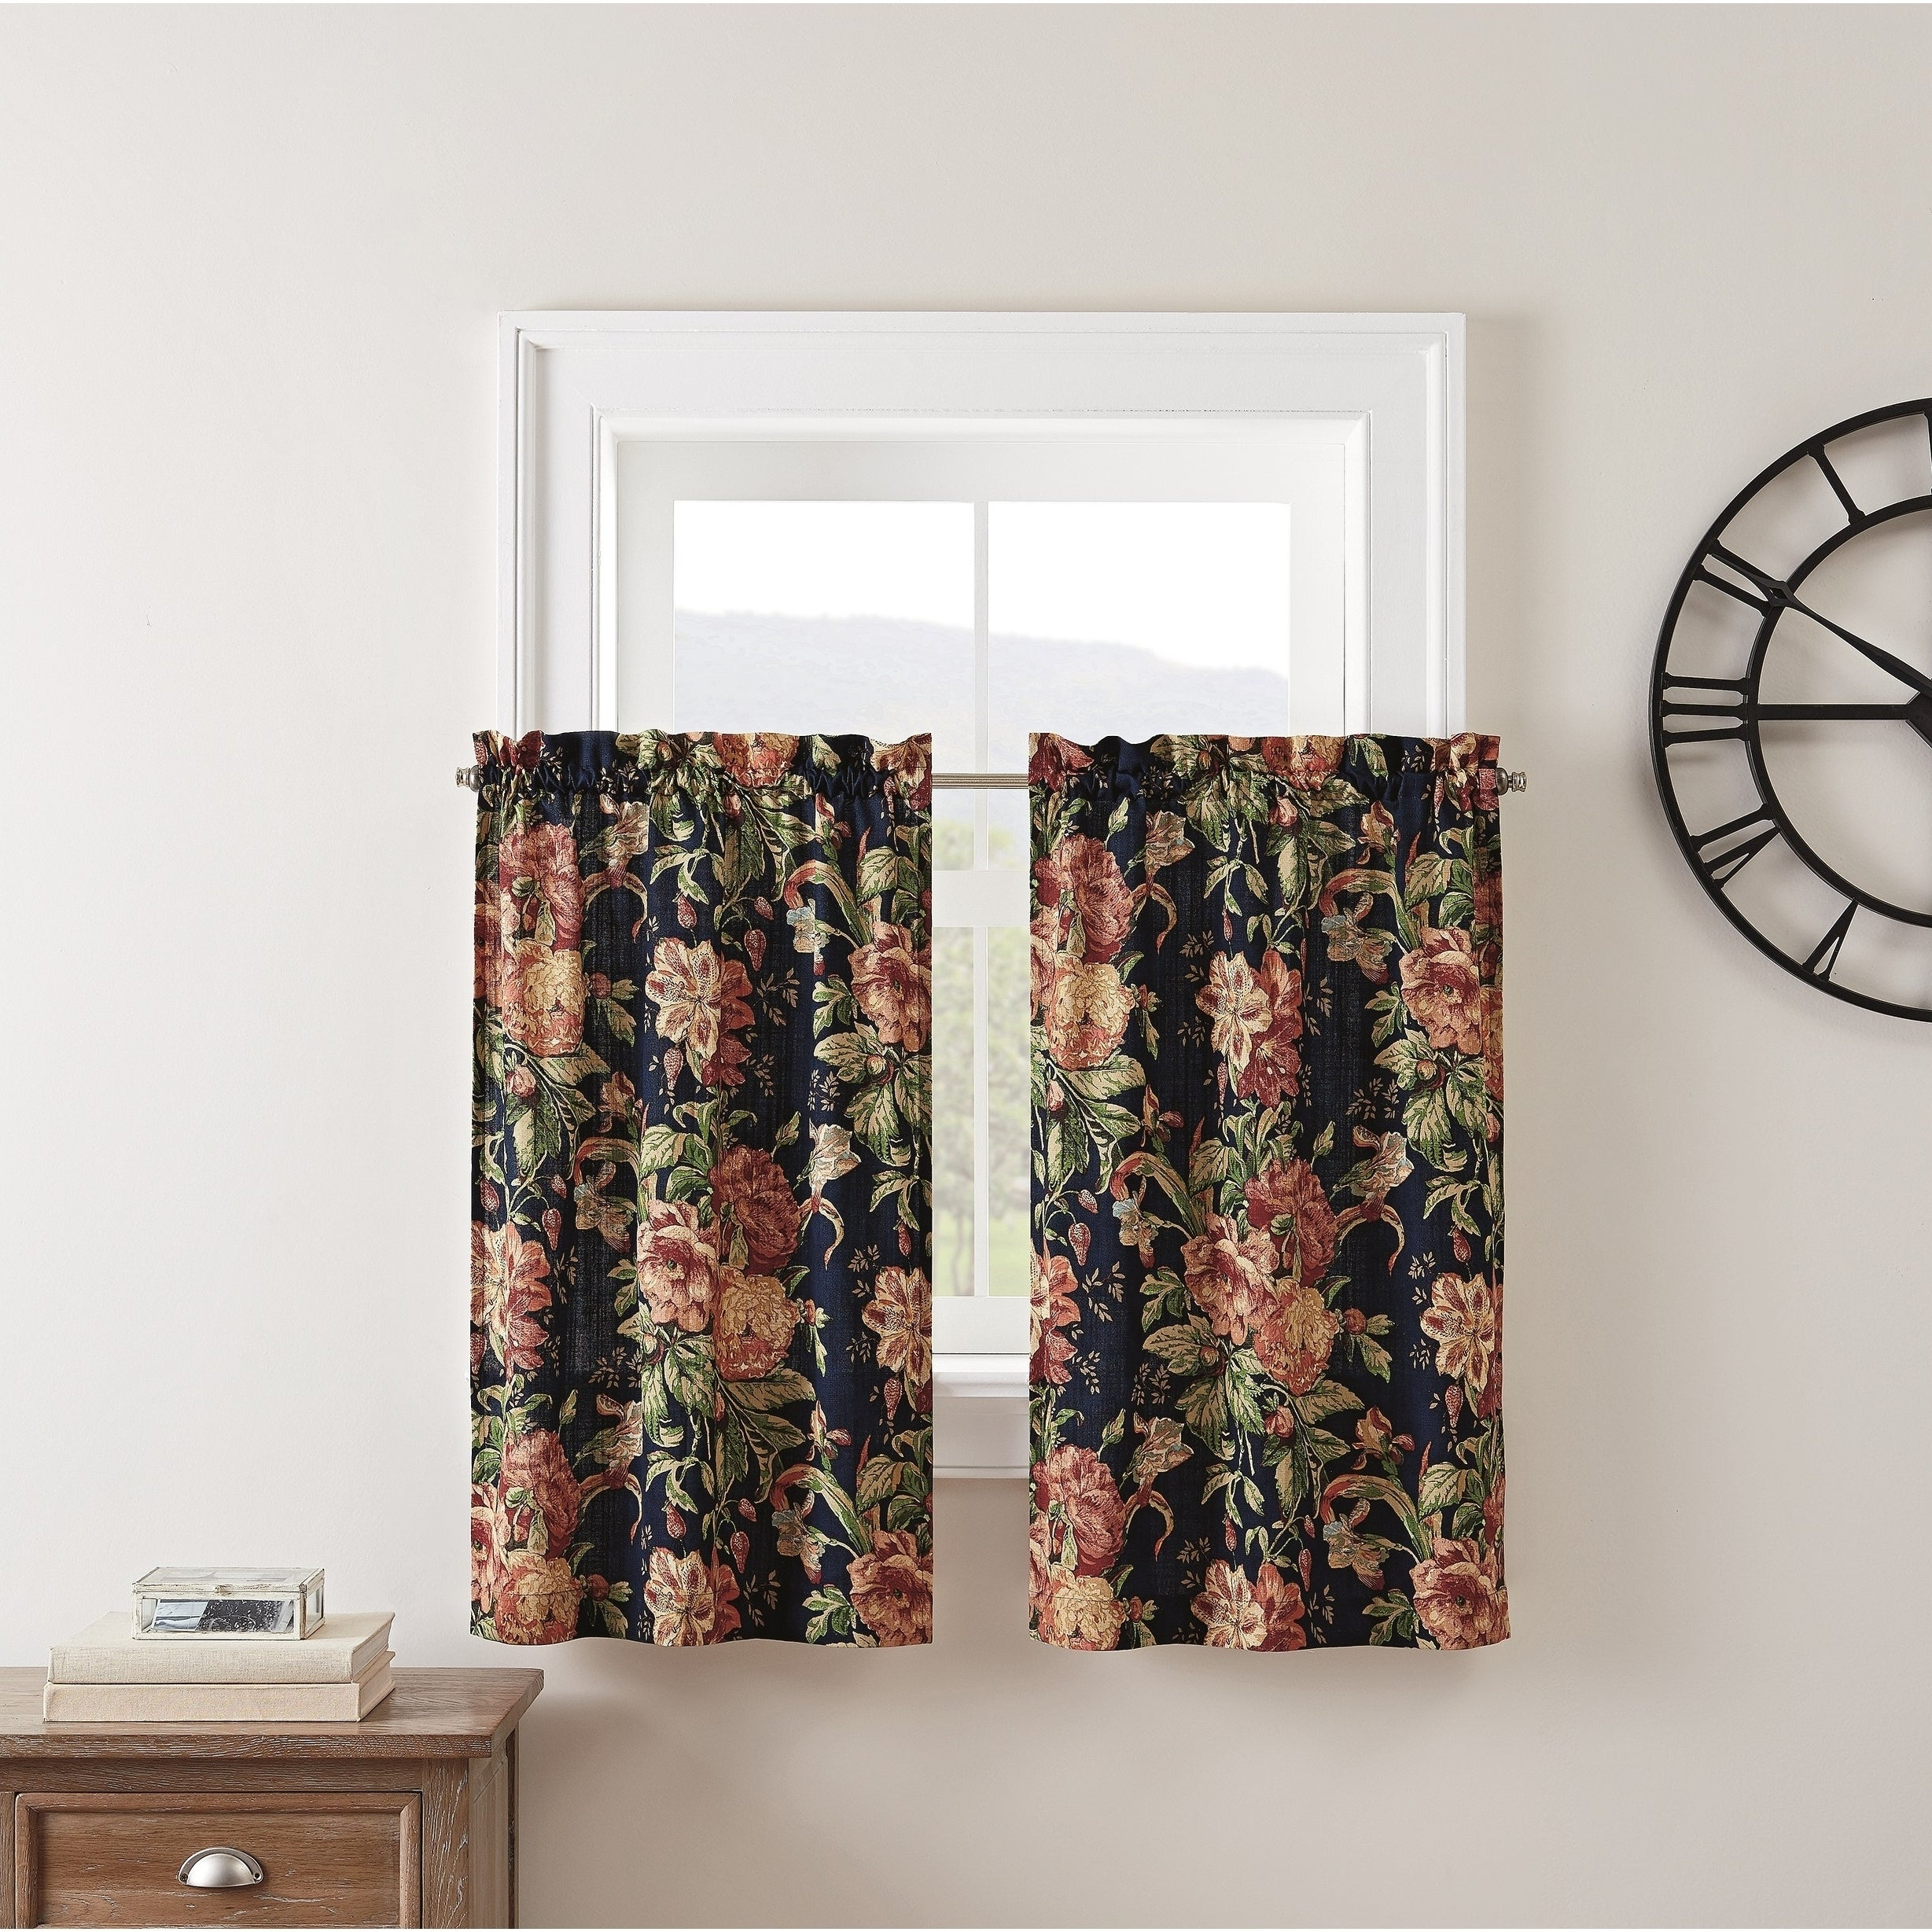 Widely Used Oakwood Linen Style Decorative Window Curtain Tier Sets In Waverly Kensington Bloom Window Tier Pair (View 20 of 20)